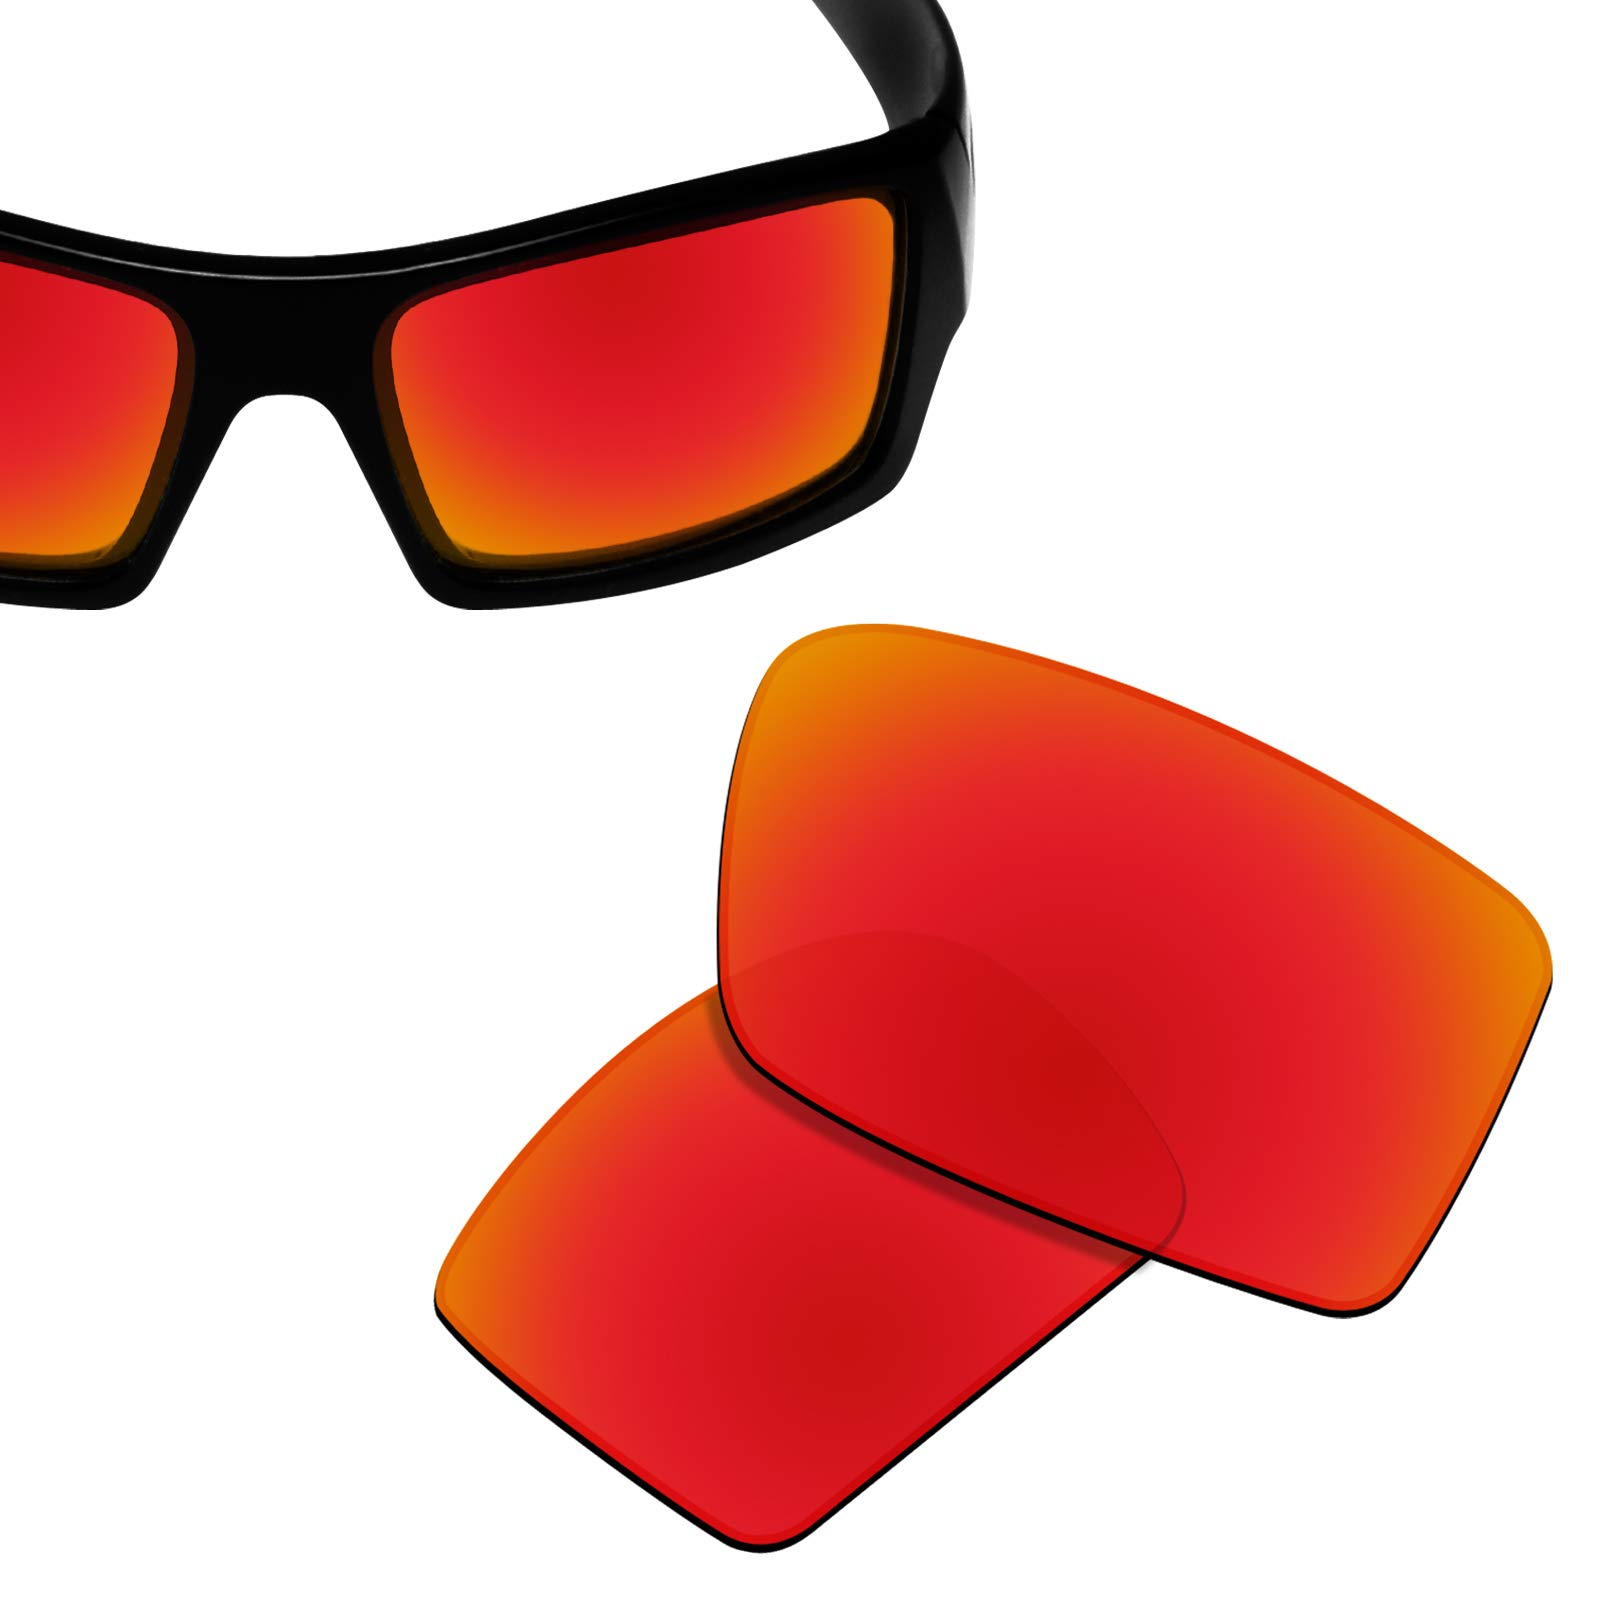 88aed37e5a New 1.8mm Thick UV400 Replacement Lenses for Oakley Gascan Sunglass -  Options product image